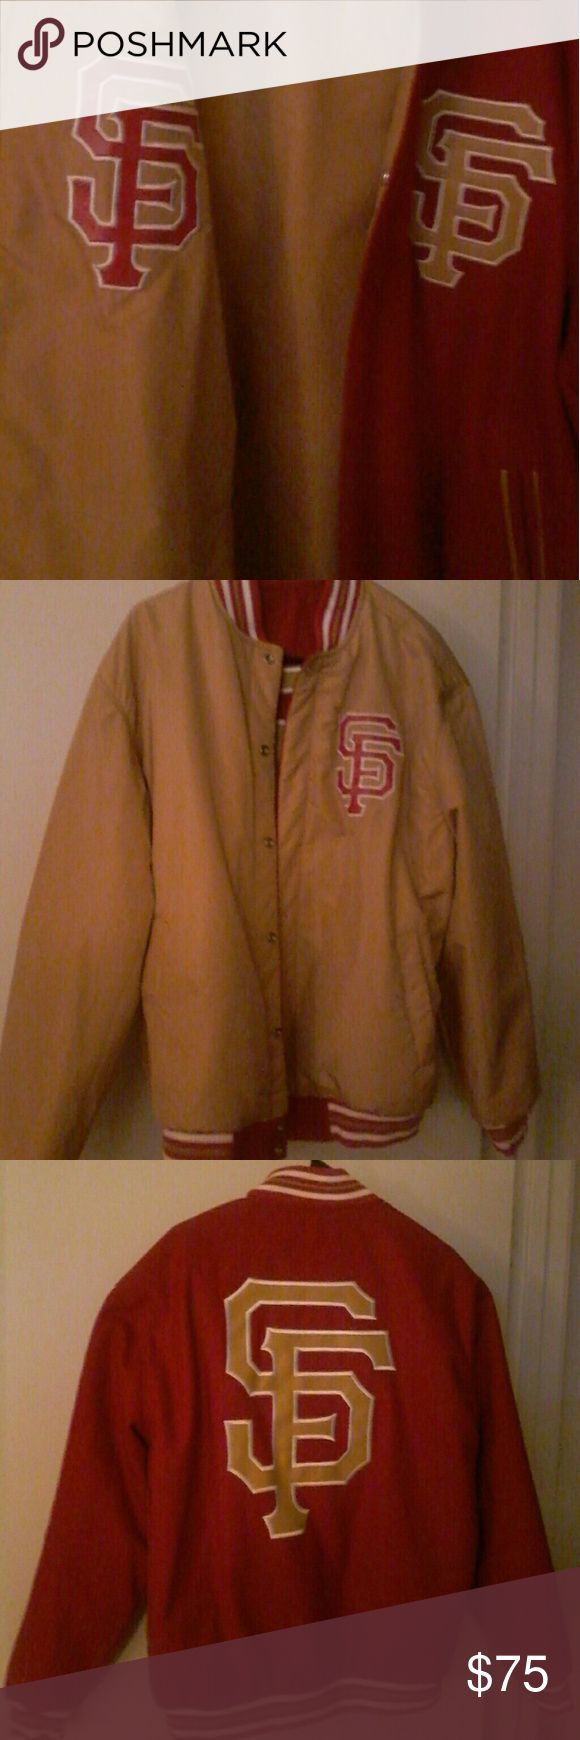 SF Giants jacket in 49ers Red & Gold Perfect for San Francisco fans! This is a unique colored snap jacket which is also reversible! Gorgeous. No tears & all buttons work properly.   I did notice a tiny line mark above the logo. See picture. This jacket is to be cleaned by leather experts or dry cleaned without fabric methods.  It was worn once then stored. So I will leave that up to the new owner. It looks like it will come right out. Very light.  Size XL  Wool & Polyester   SMOKE FREE HOME…